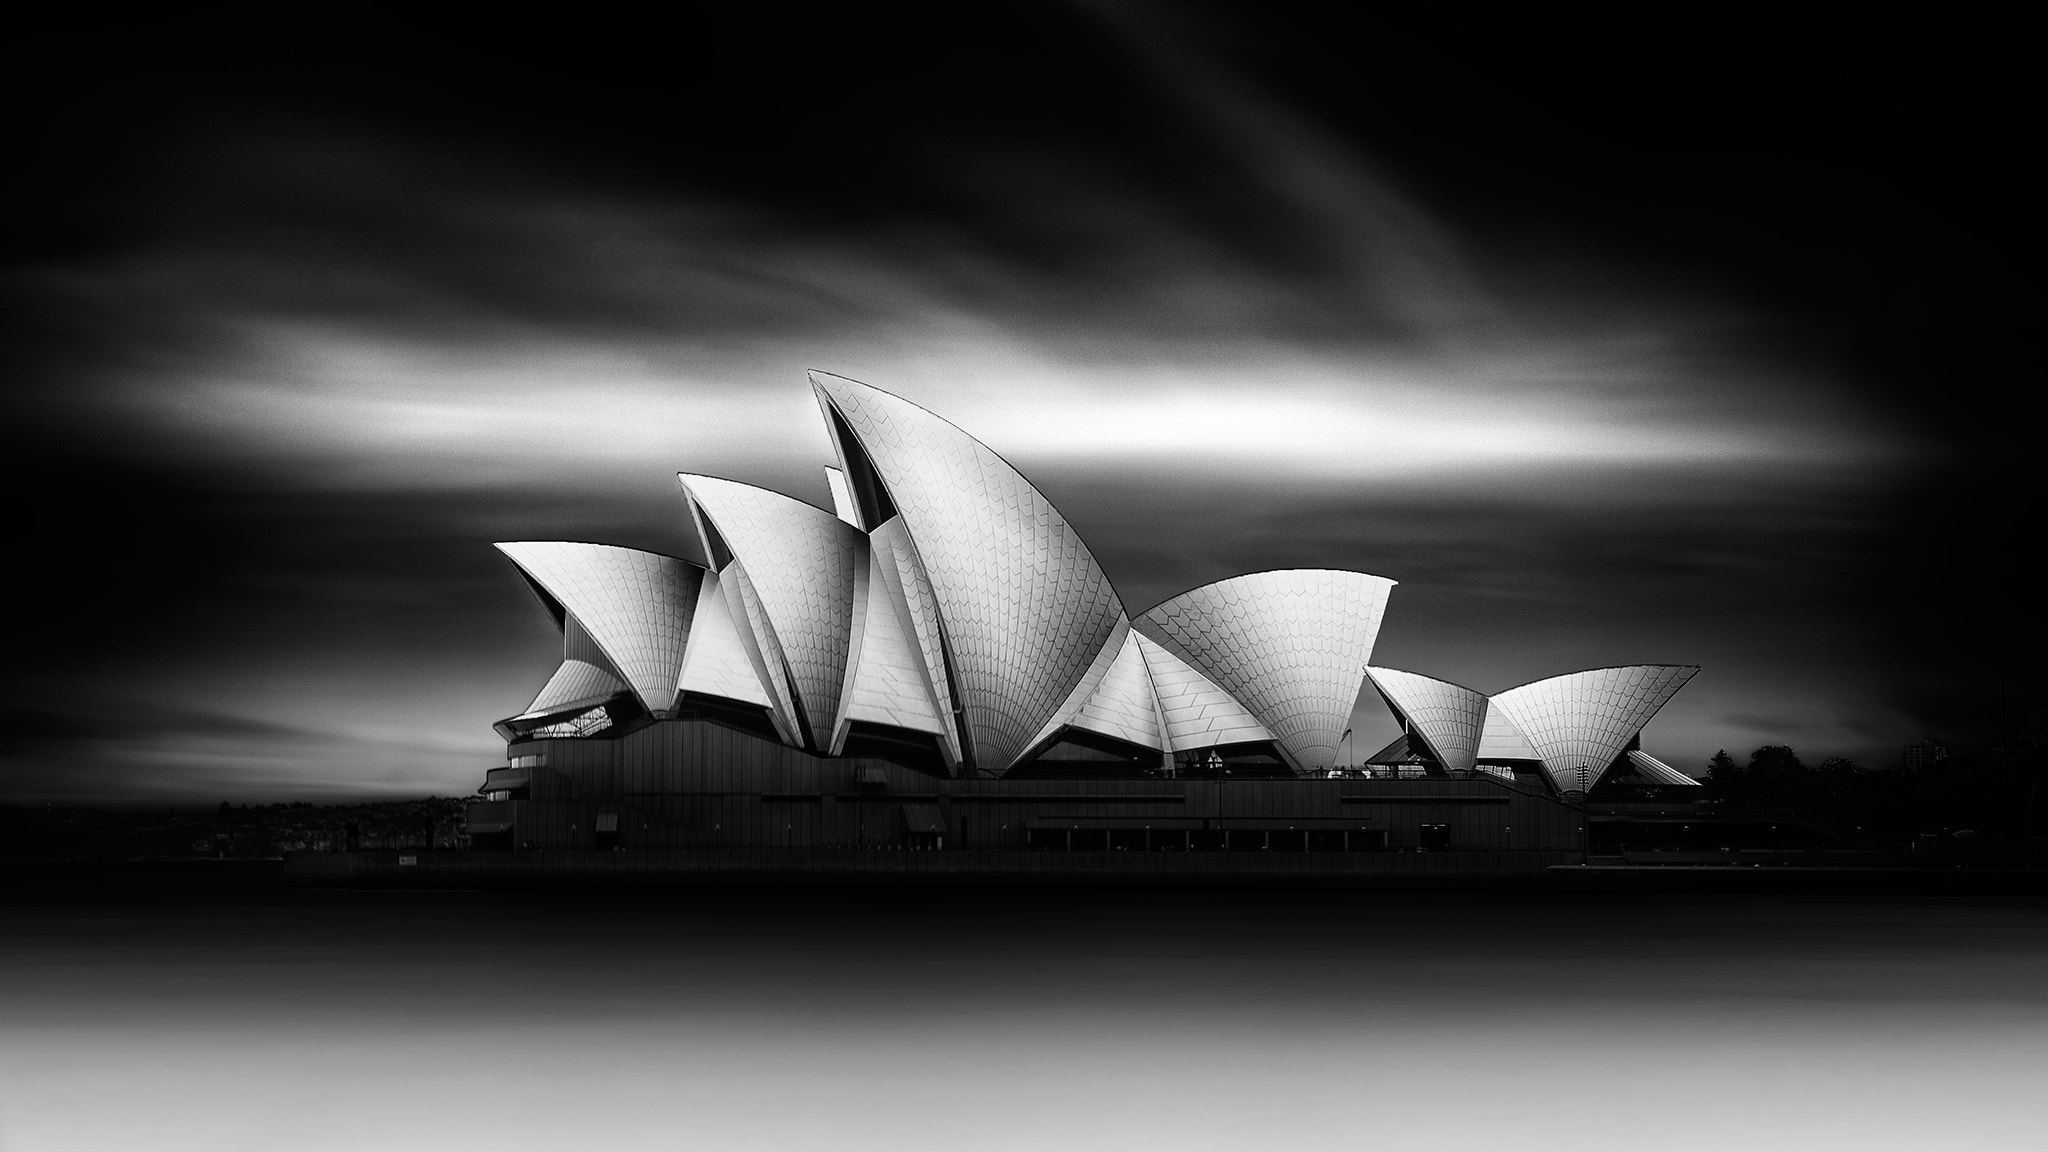 b0a12b4112711b315d977e3d983e6ca1 - Download Black And White Photo Of Sydney Opera House  Pictures